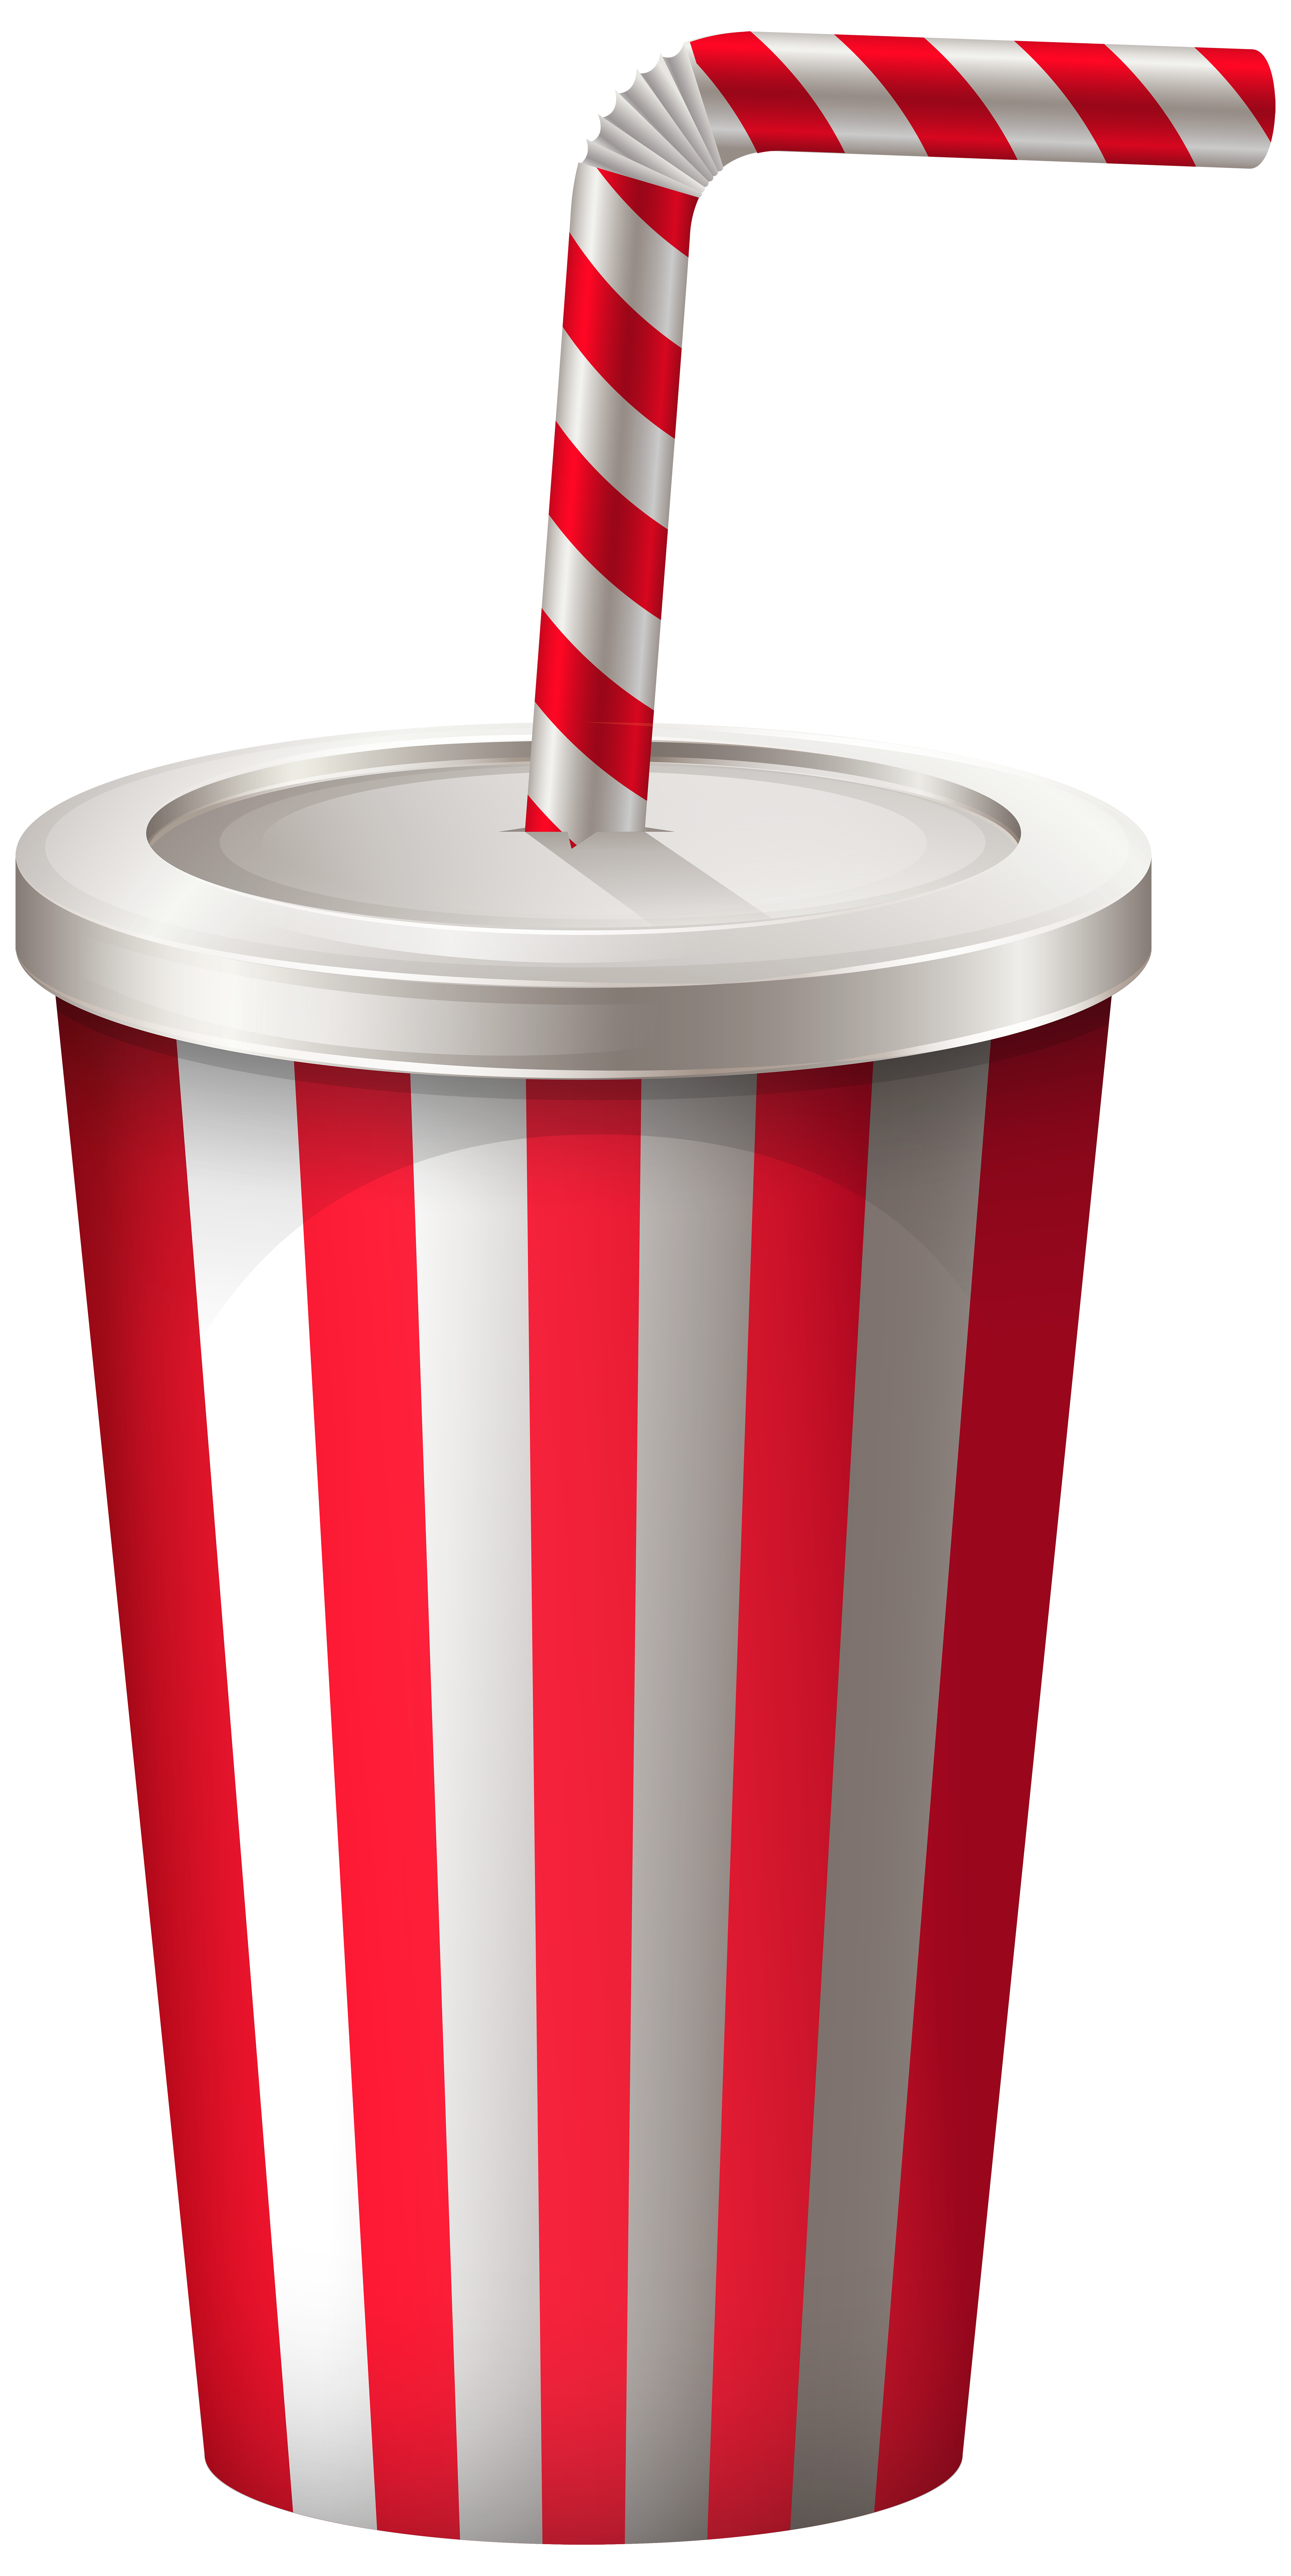 Drink Cup with Straw PNG Transparent Clip Art Image.